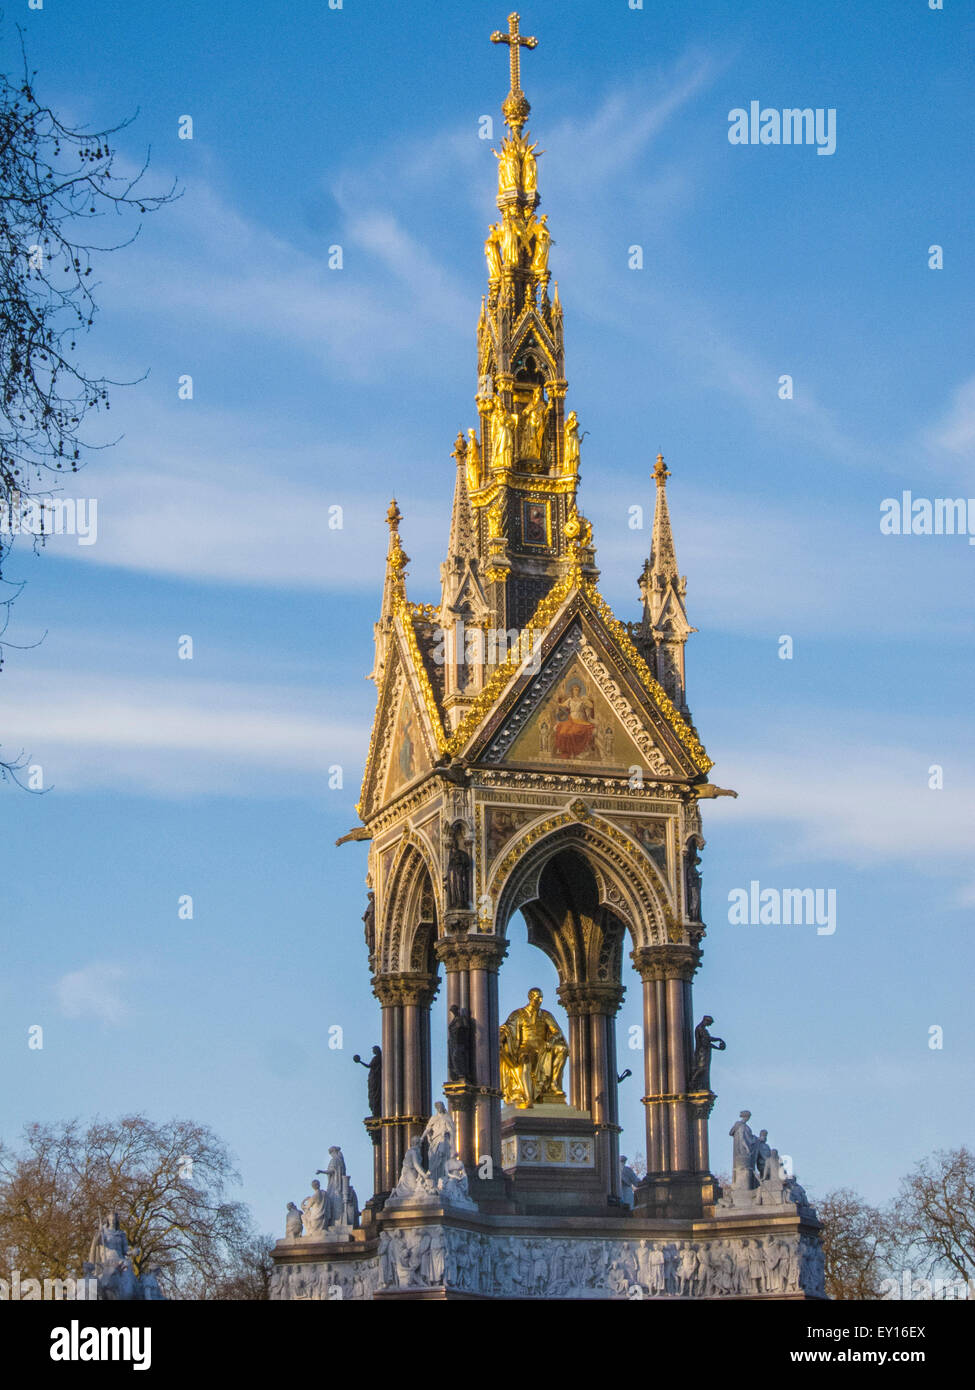 Albert Memorial, London. Commissioned by Queen Victoria in memory of her beloved husband. - Stock Image